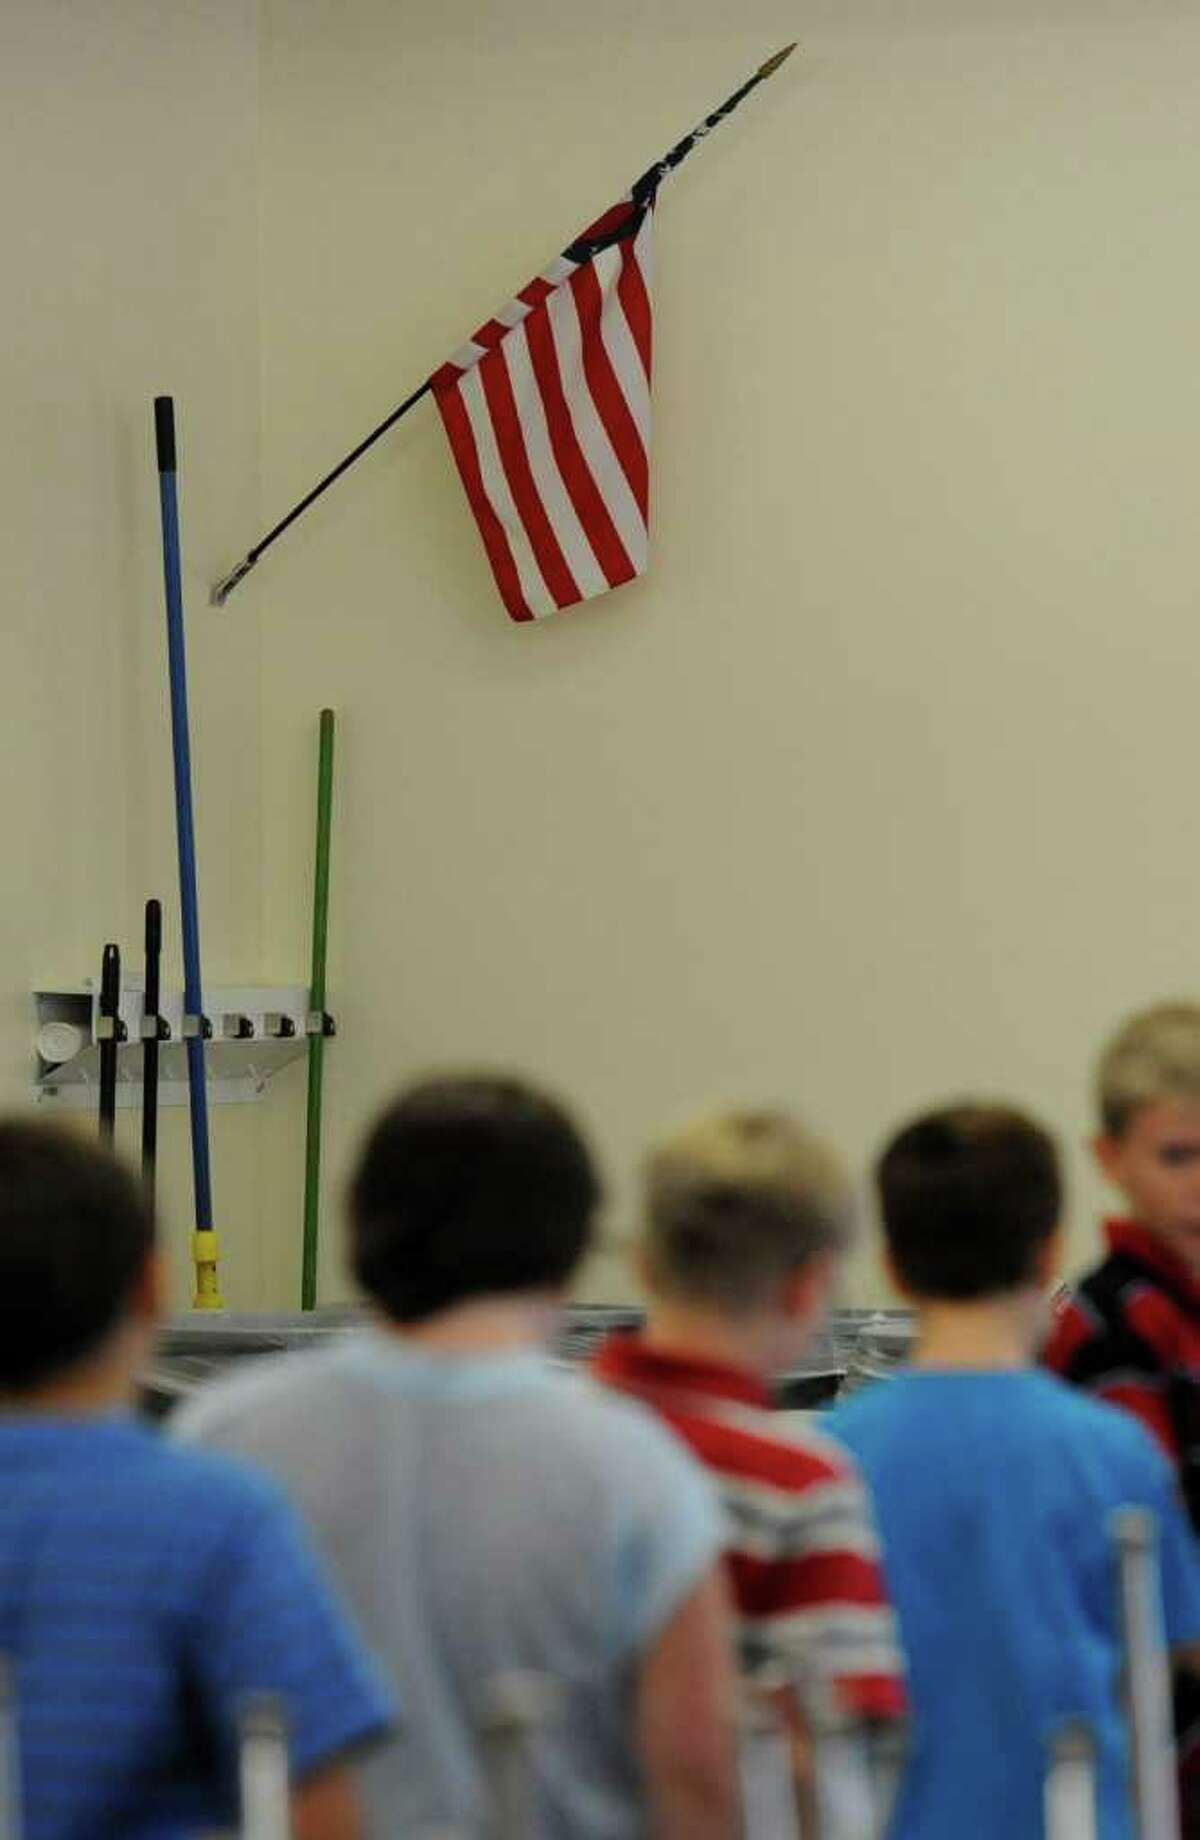 An American flag is present in the cafeteria at the Gilboa Conesville Central Schools building in Gilboa, N.Y. (Skip Dickstein / Times Union)